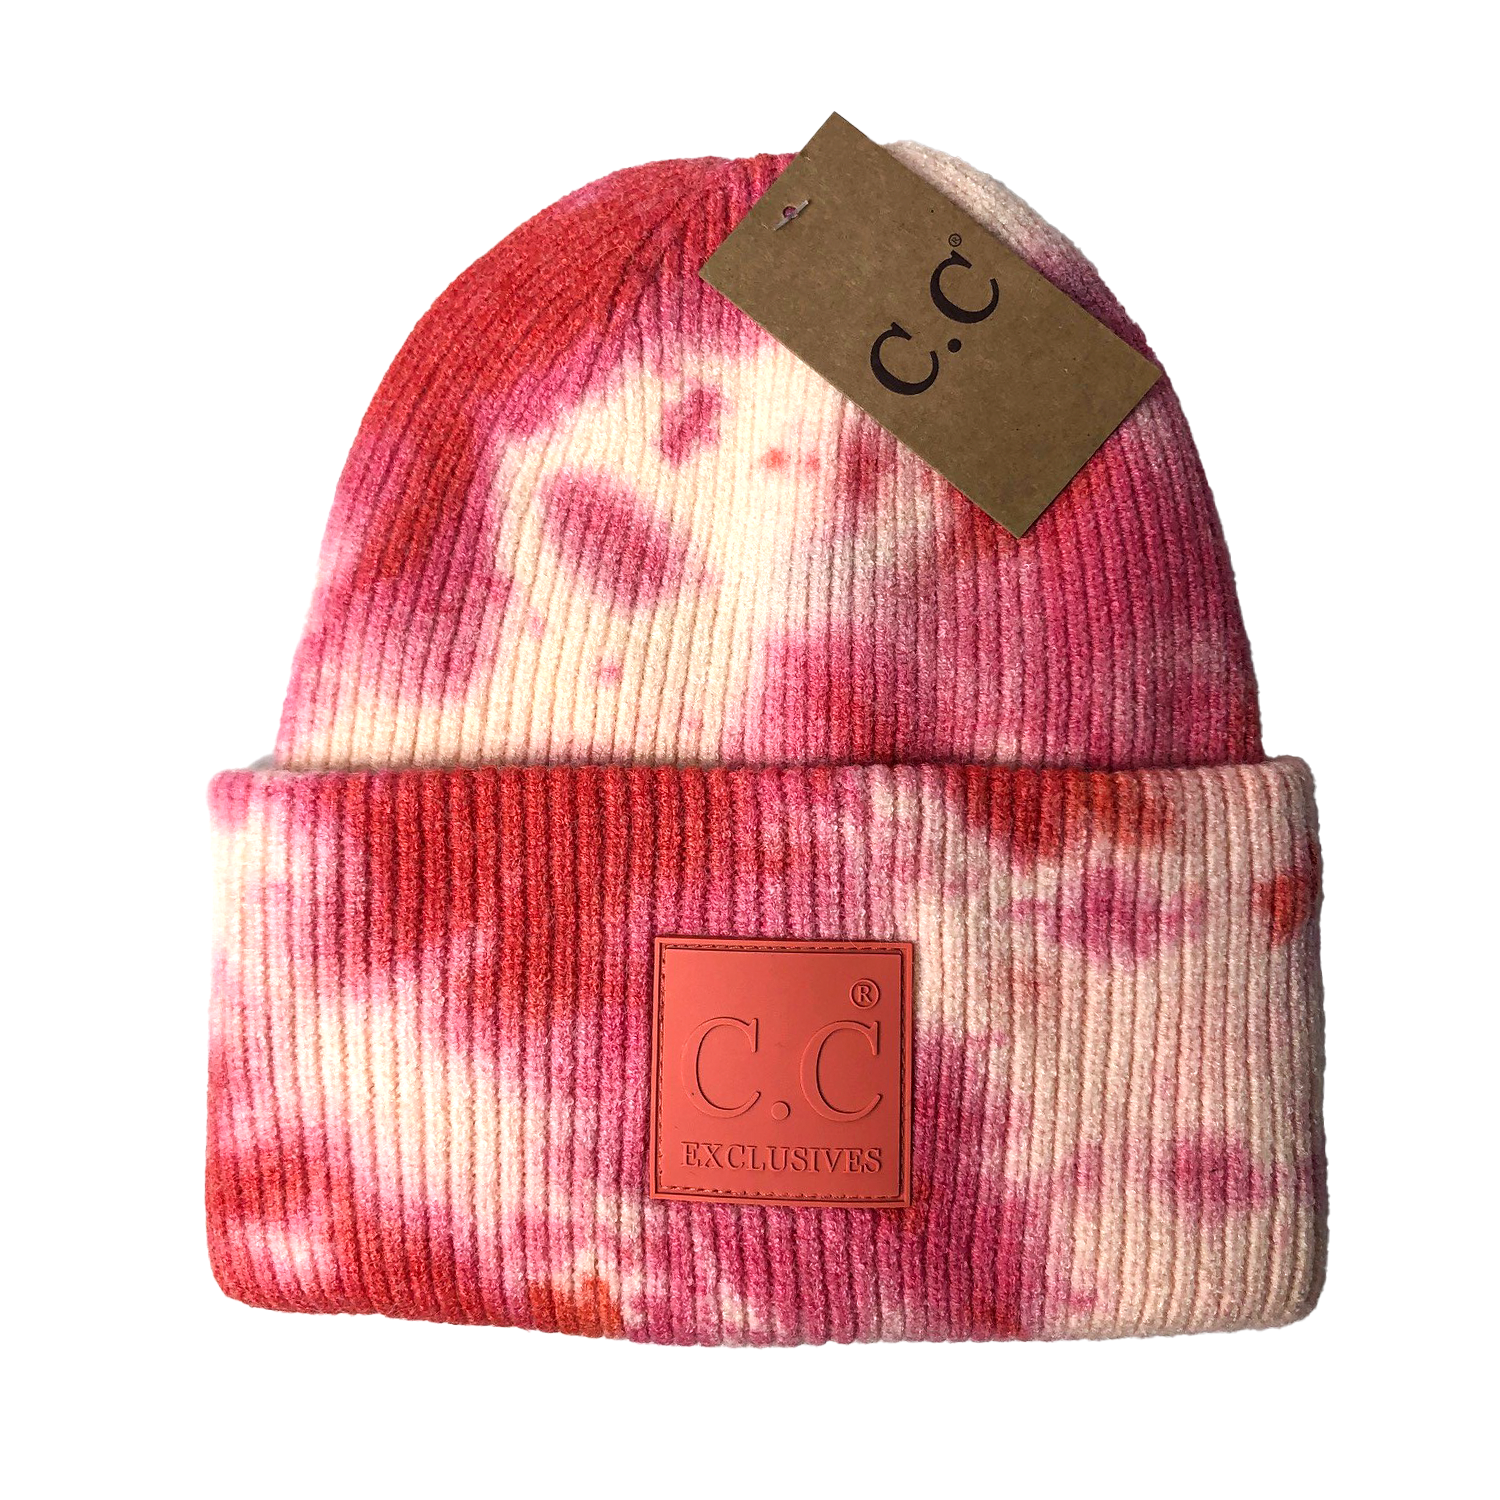 HAT-7380 Tie Dye Beanie with C.C Rubber Patch - Orange/Peach